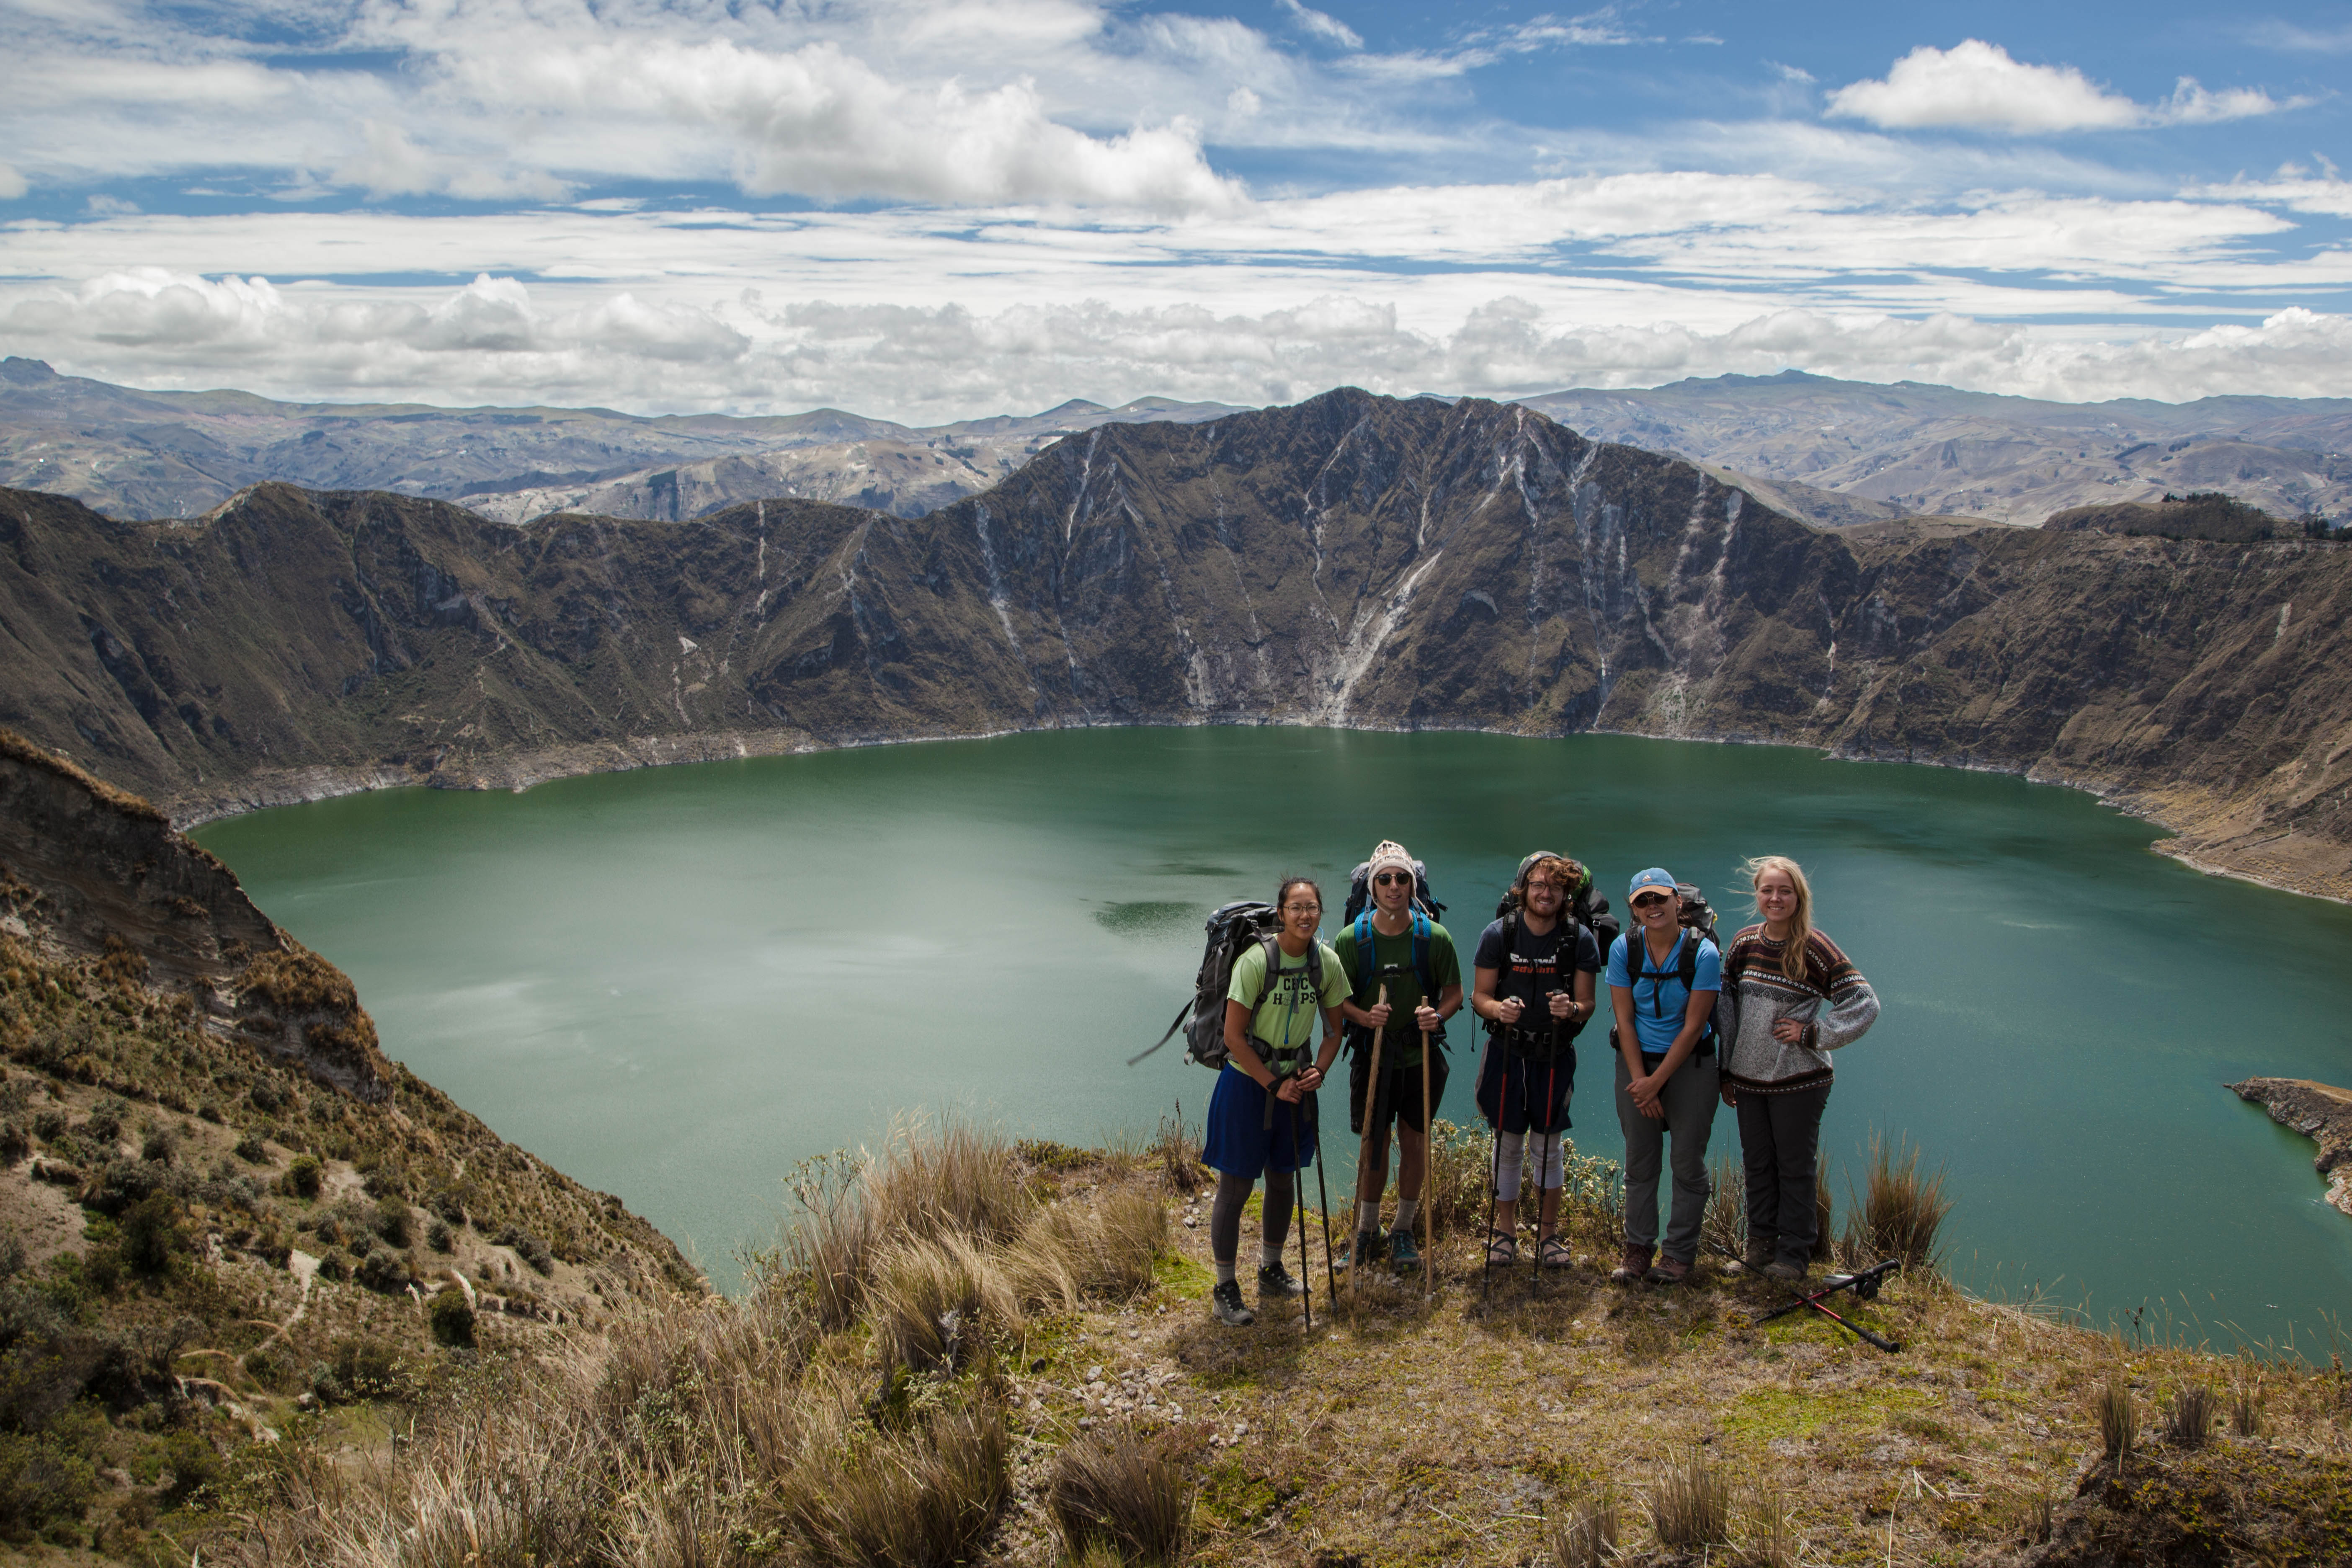 Students backpacking in Ecuador on the Semester Program